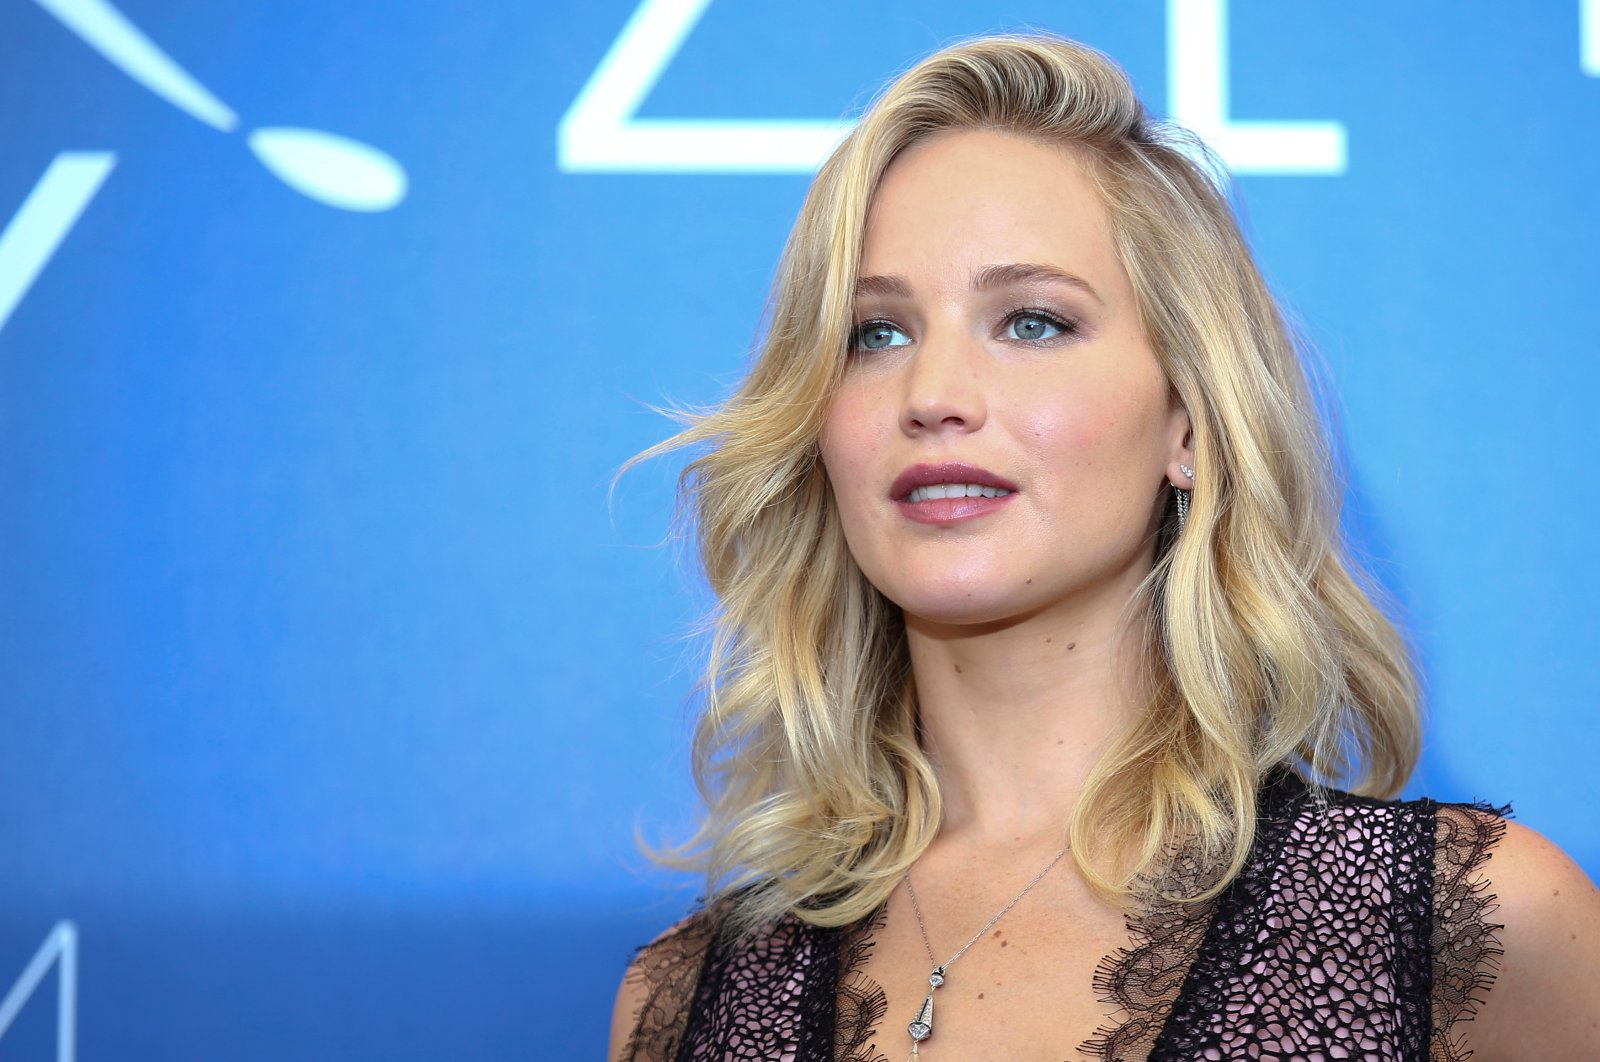 """Actress Jennifer Lawrence poses during a photocall for the movie """"Mother!"""" at the 74th Venice Film Festival in Venice, Italy, Sept. 5, 2017. (Reuters Photo)"""